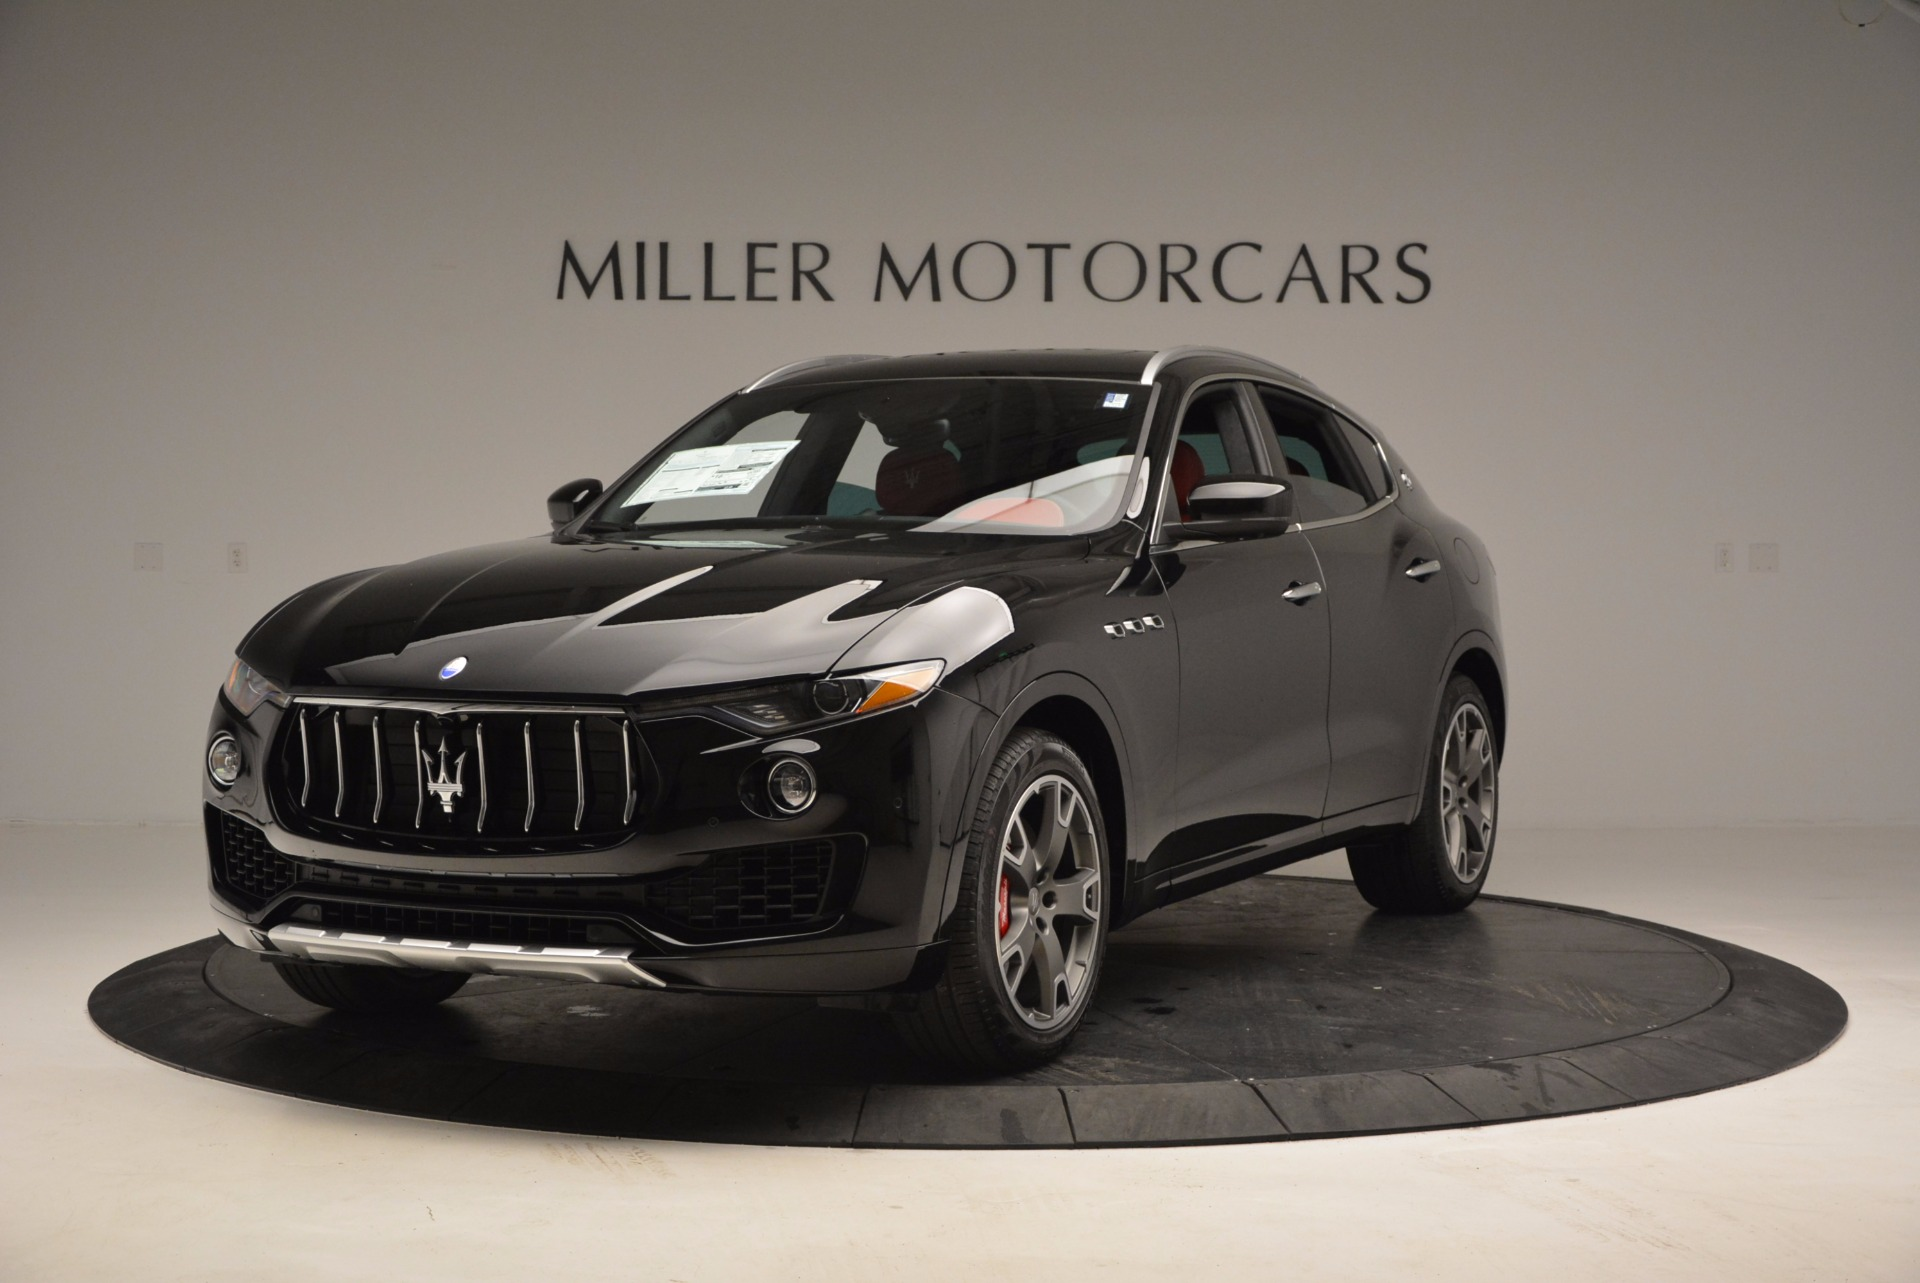 New 2017 Maserati Levante S Zegna Edition for sale Sold at Rolls-Royce Motor Cars Greenwich in Greenwich CT 06830 1